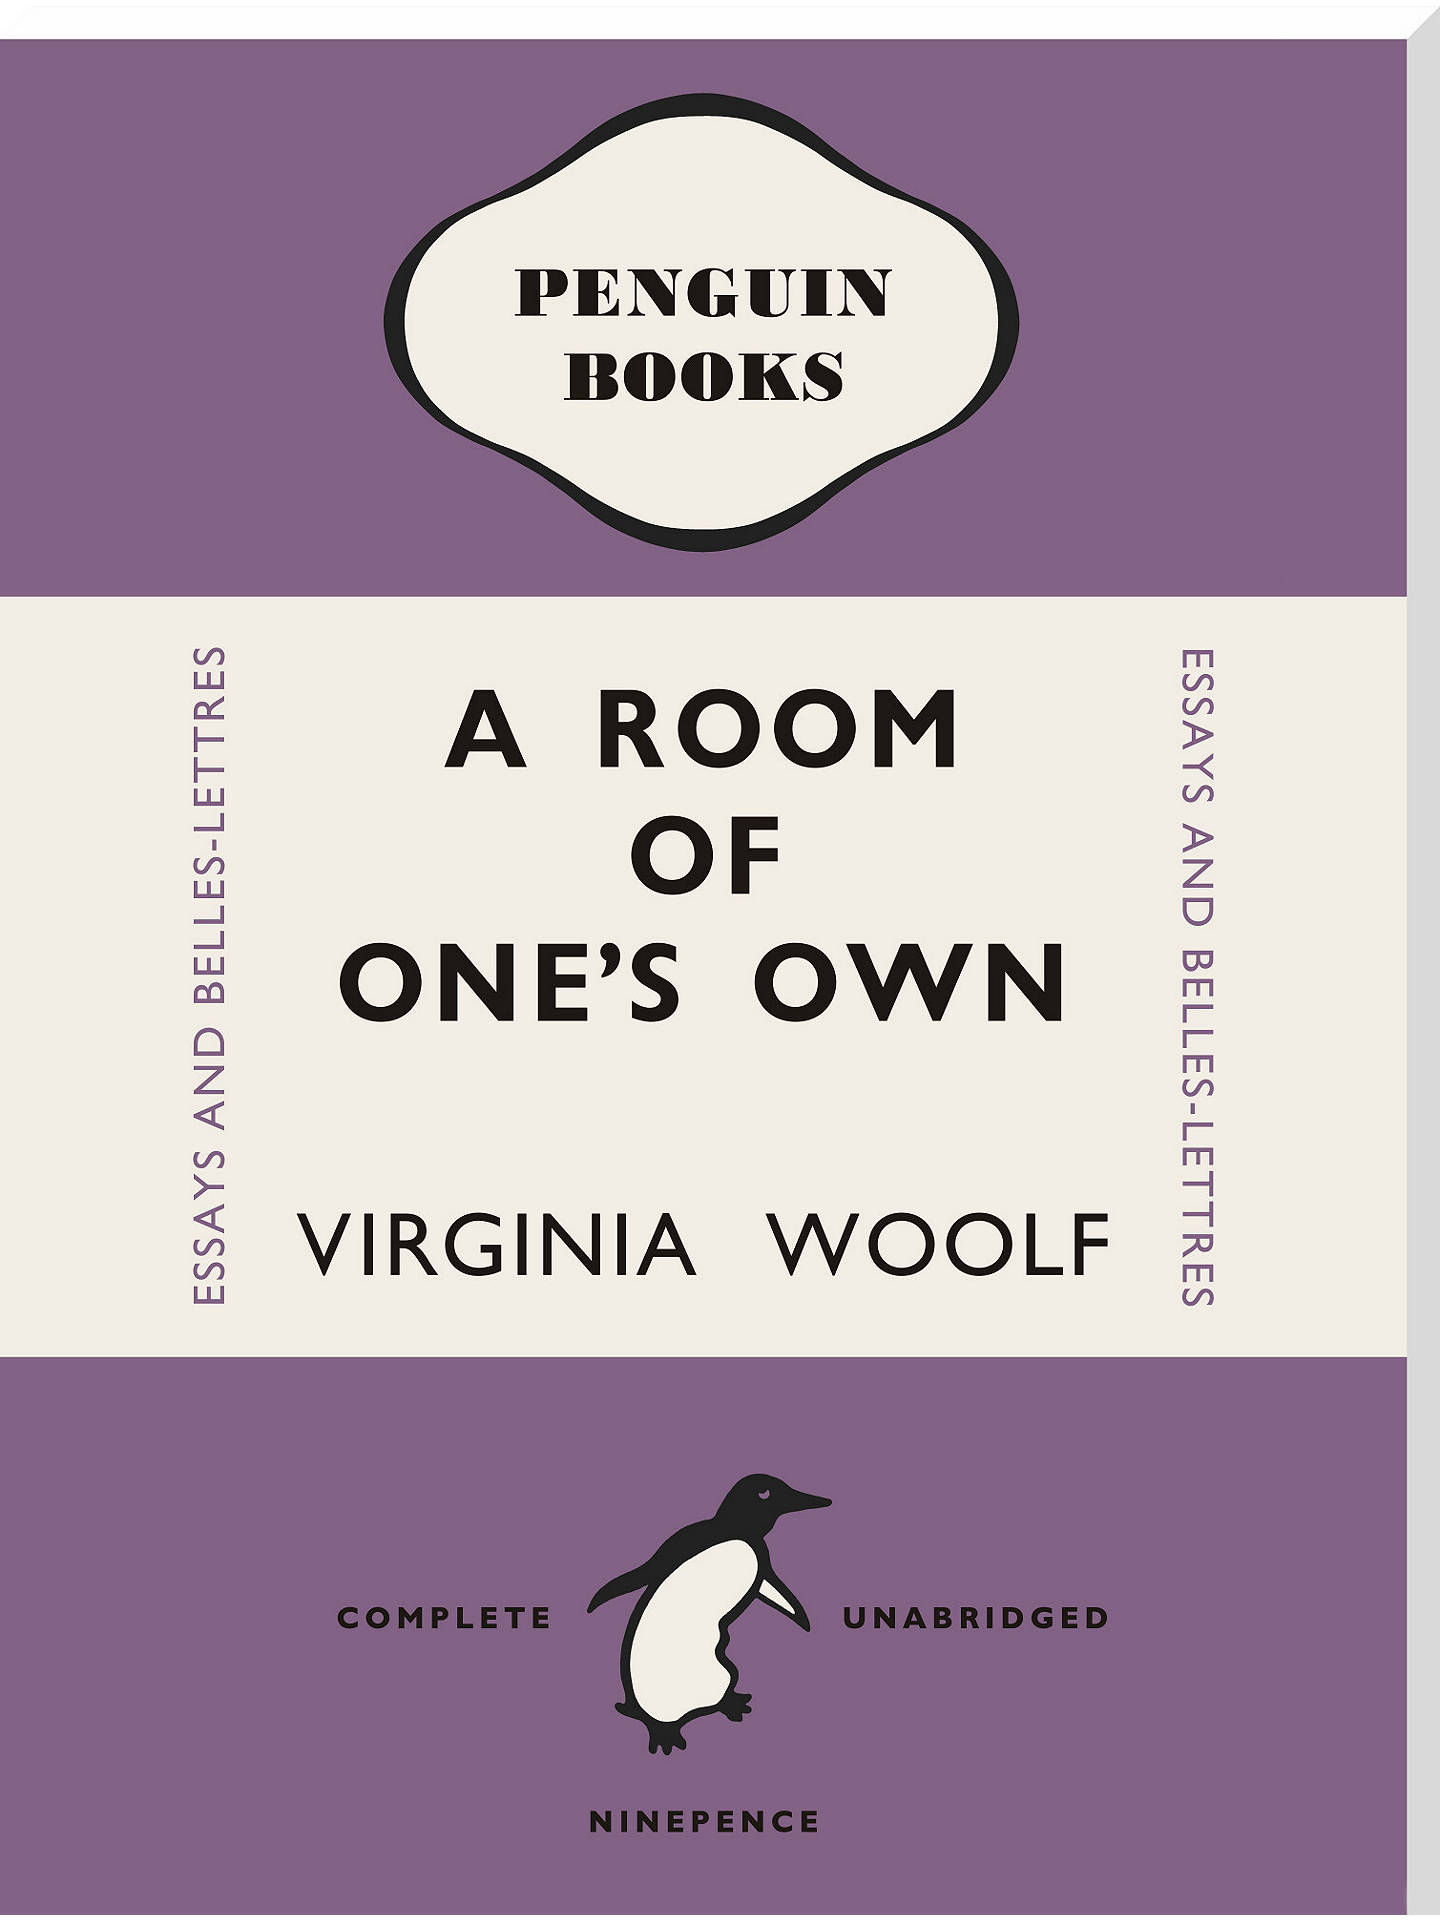 Penguin Books - Virginia Woolf A Room Of One's Own at John Lewis ...